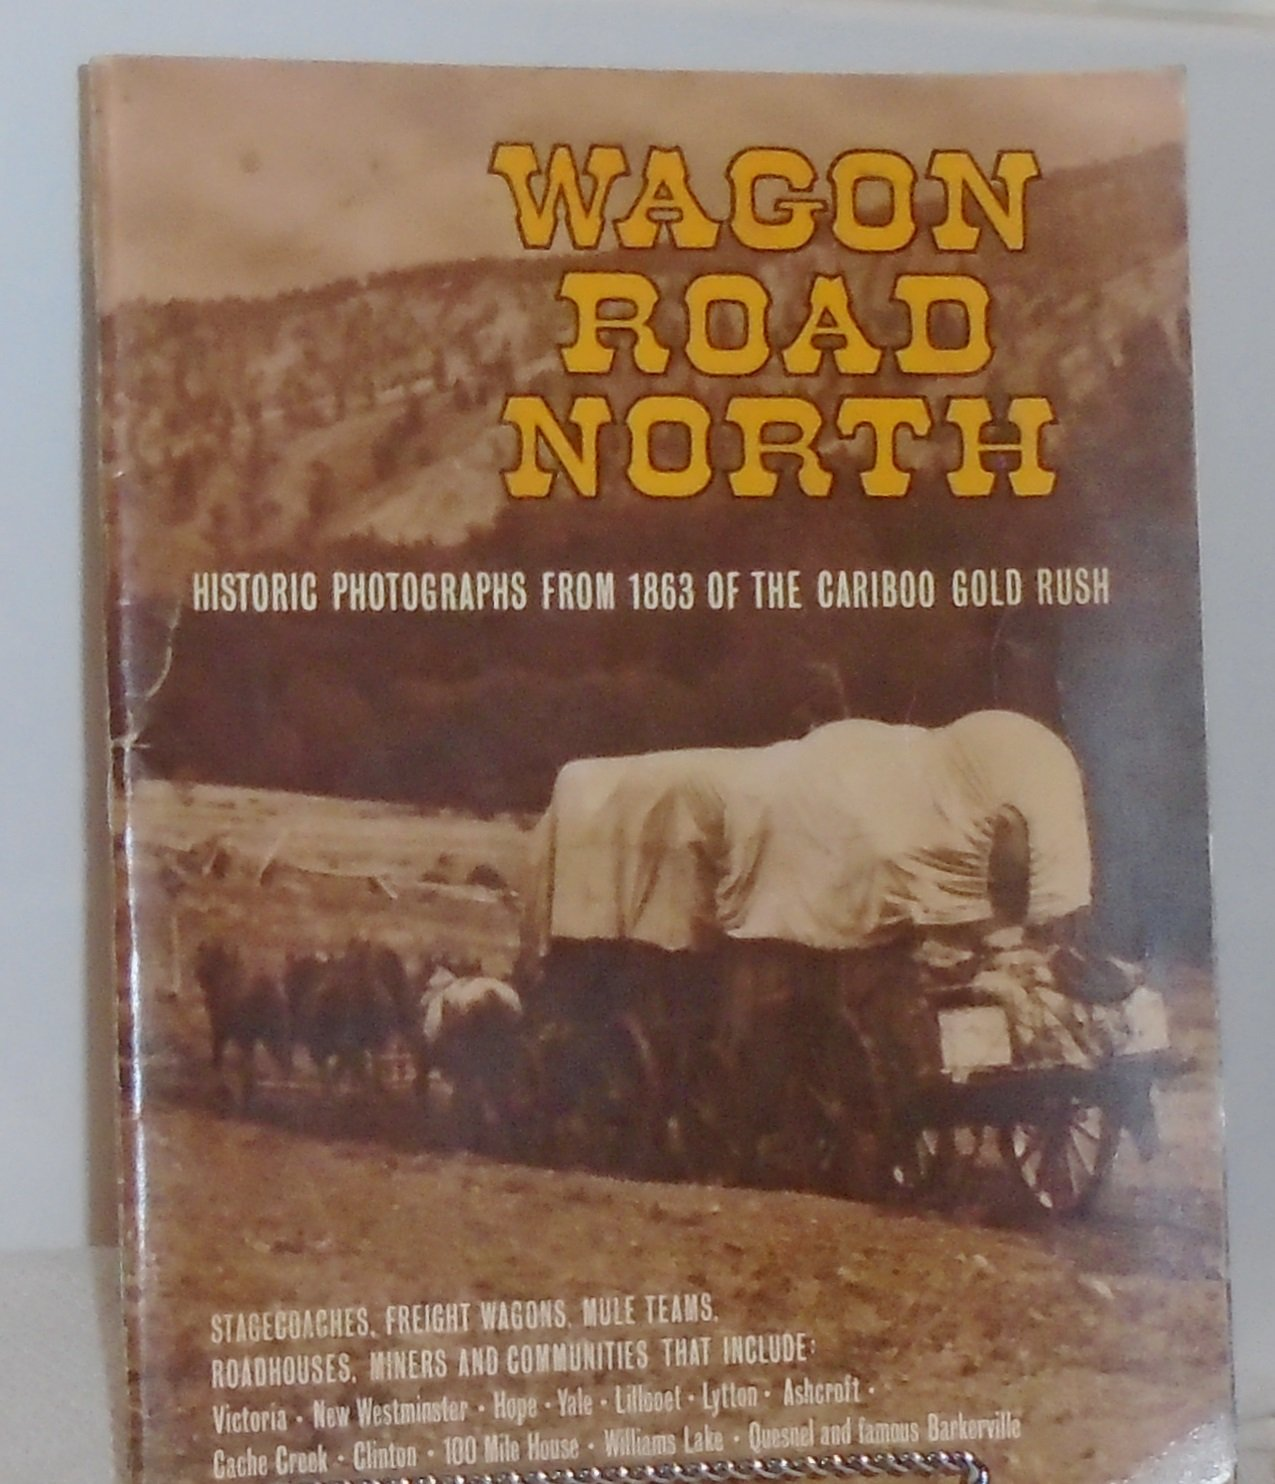 WAGON ROAD NORTH by ART DOWNS, Softcover, 1863 Cariboo Gold Rush